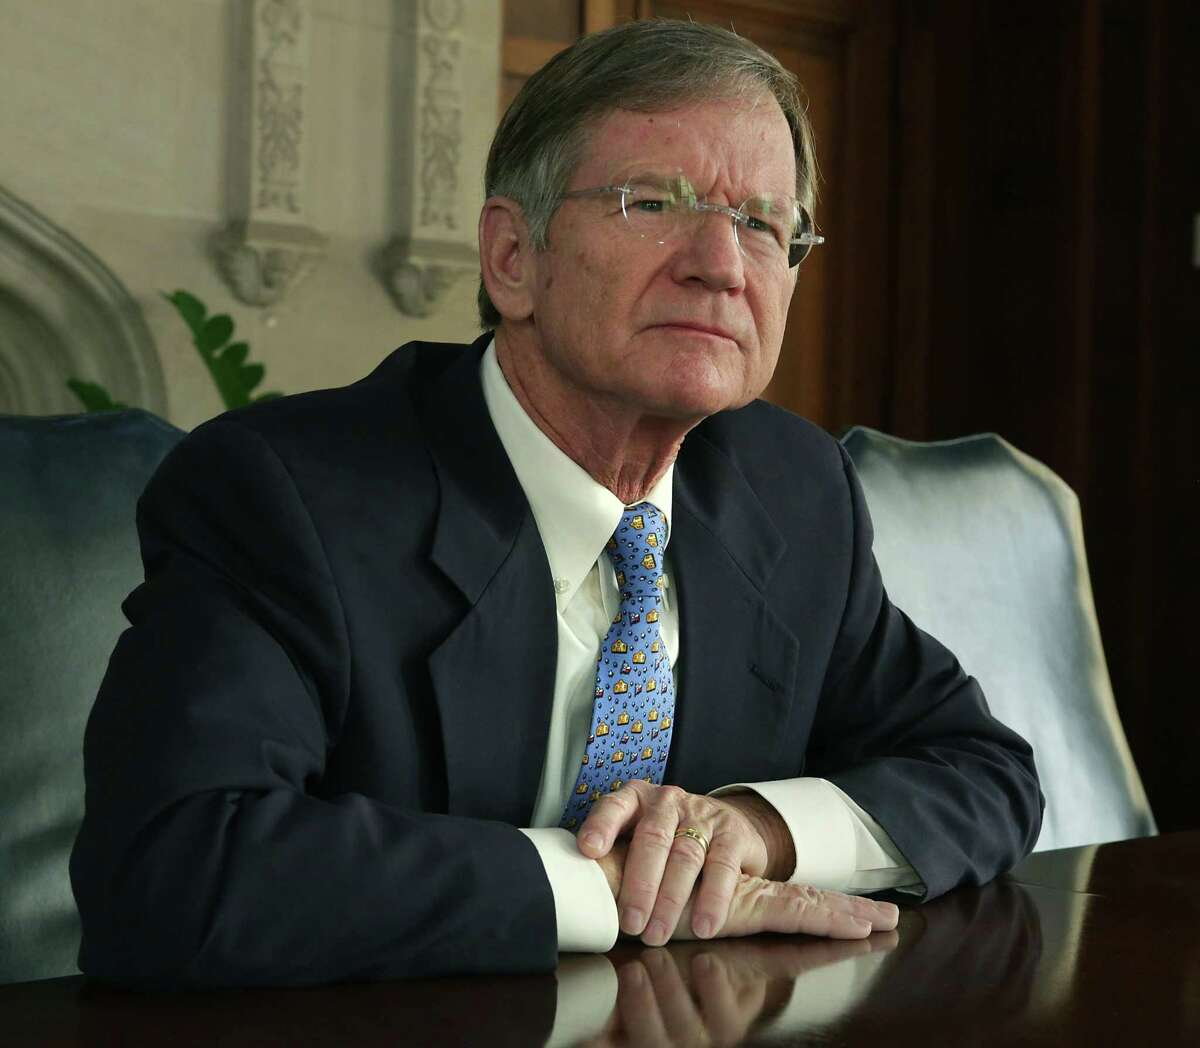 U.S. Rep. Lamar Smith, R-San Antonio, announced on Nov. 2, 2017, that he will not seek re-election in 2018.